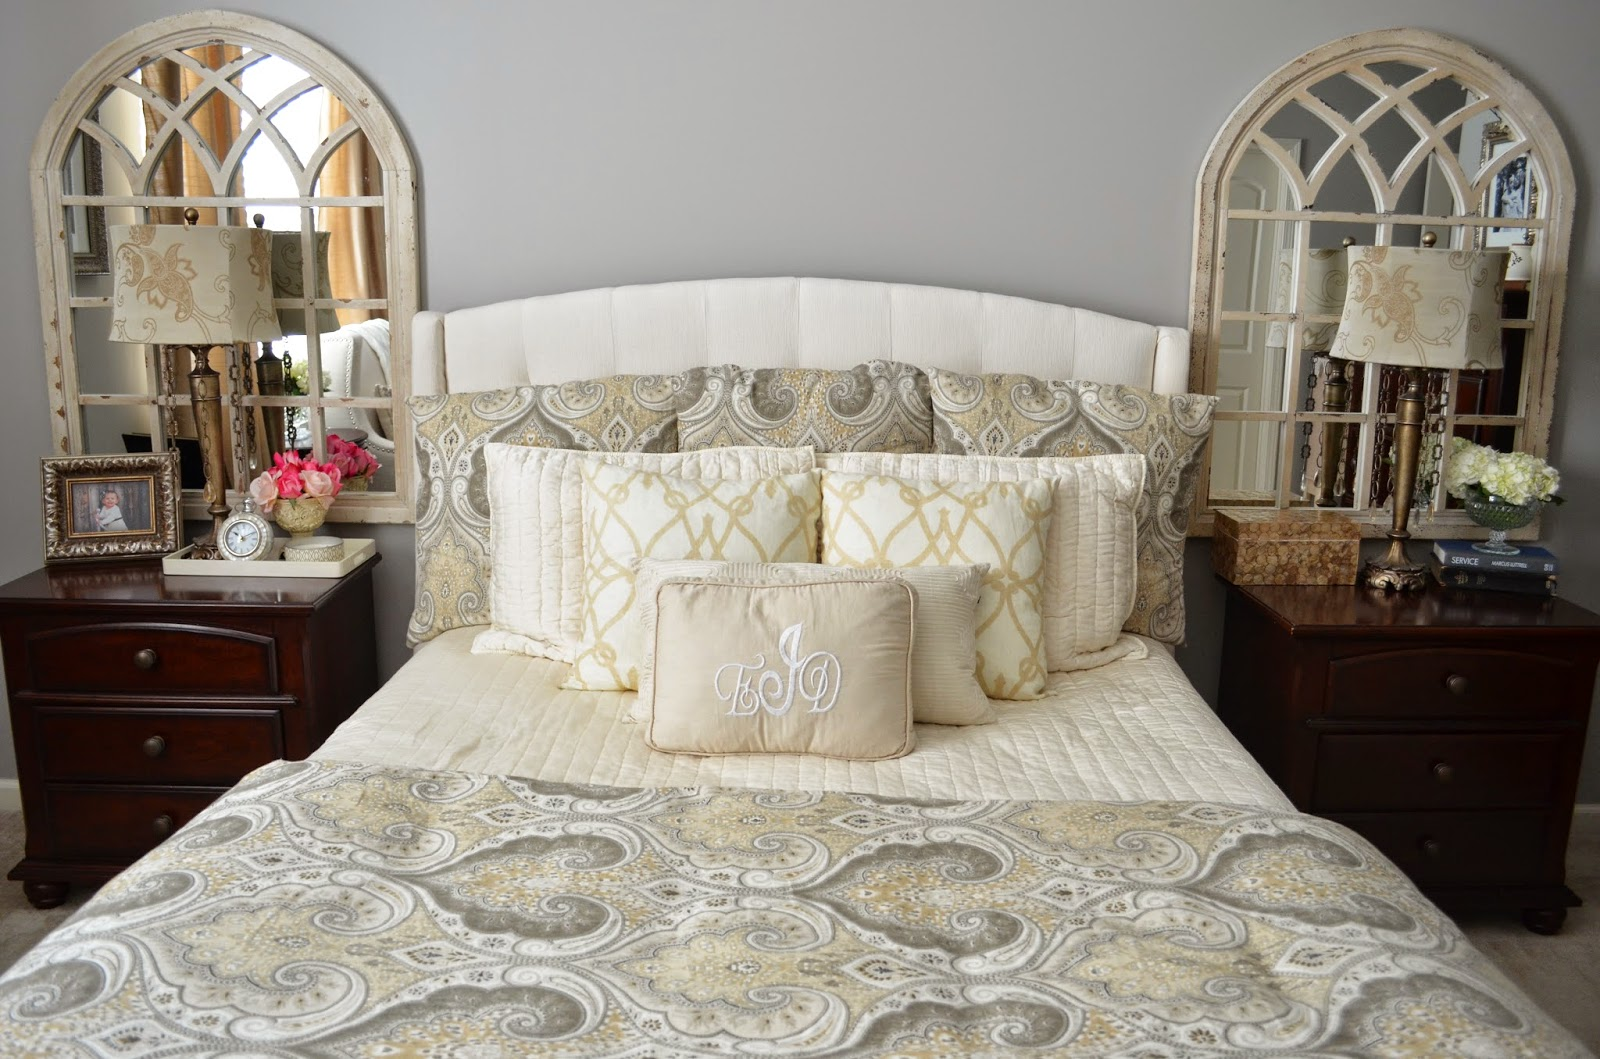 Fancy When it came in we moved the bed that matches the set into the guestroom